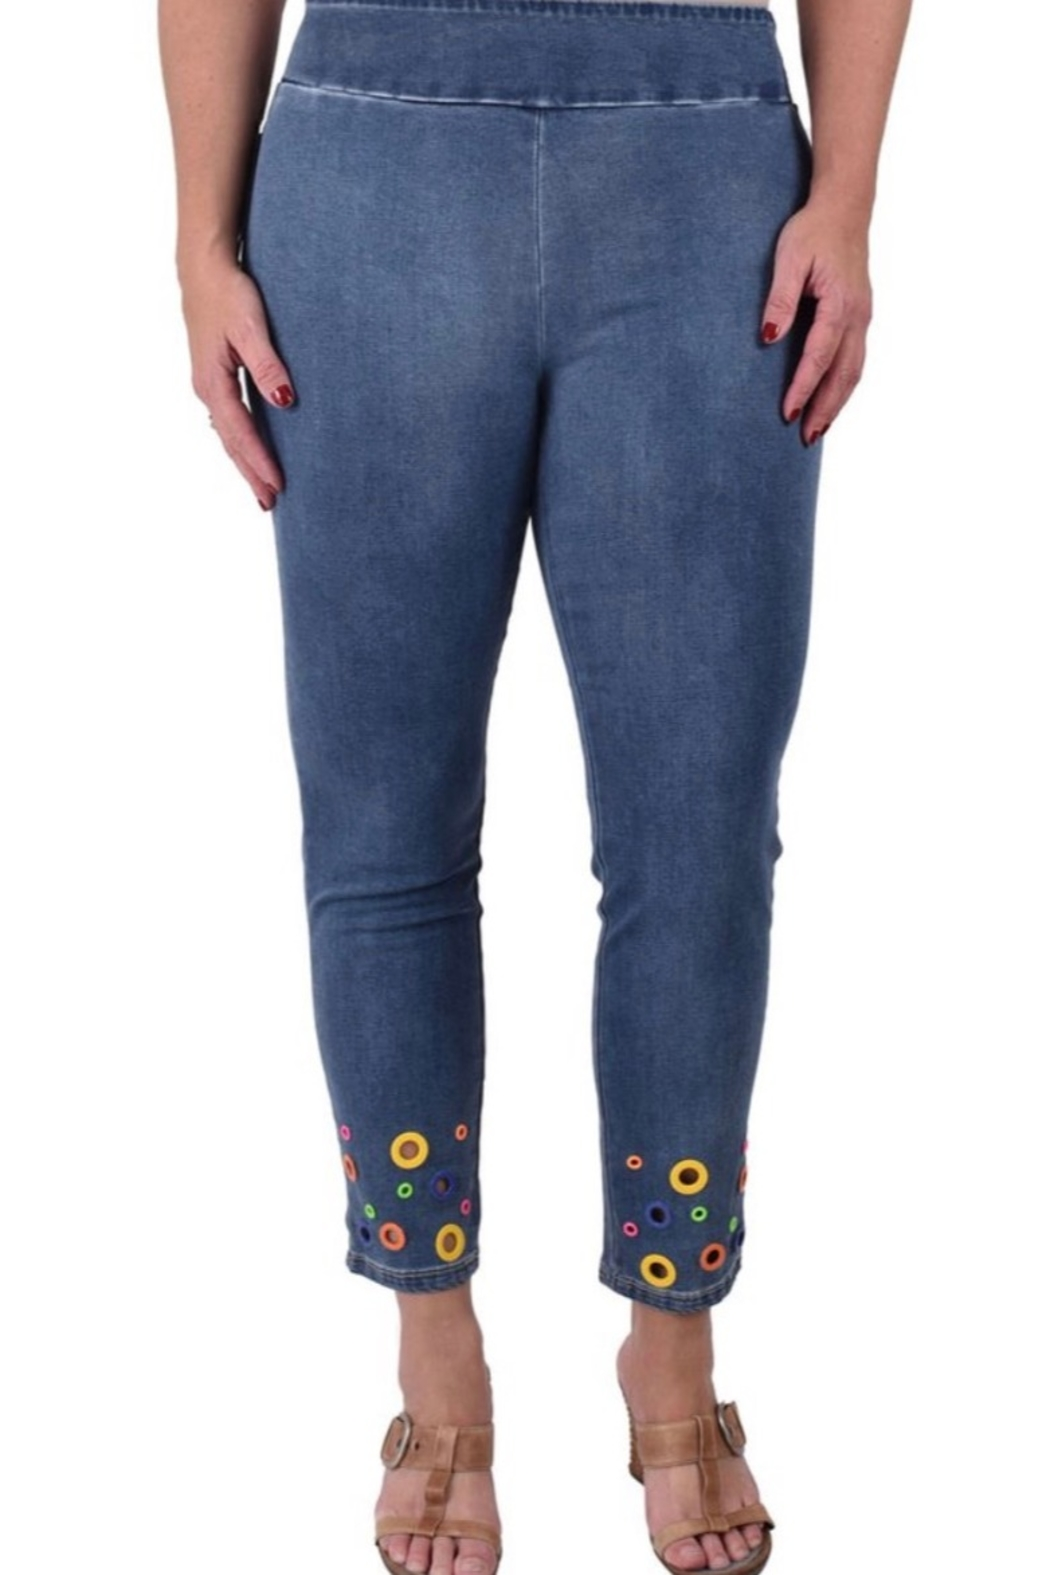 Ethyl Julie Ankle jeans with multi-colored grommets - Main Image